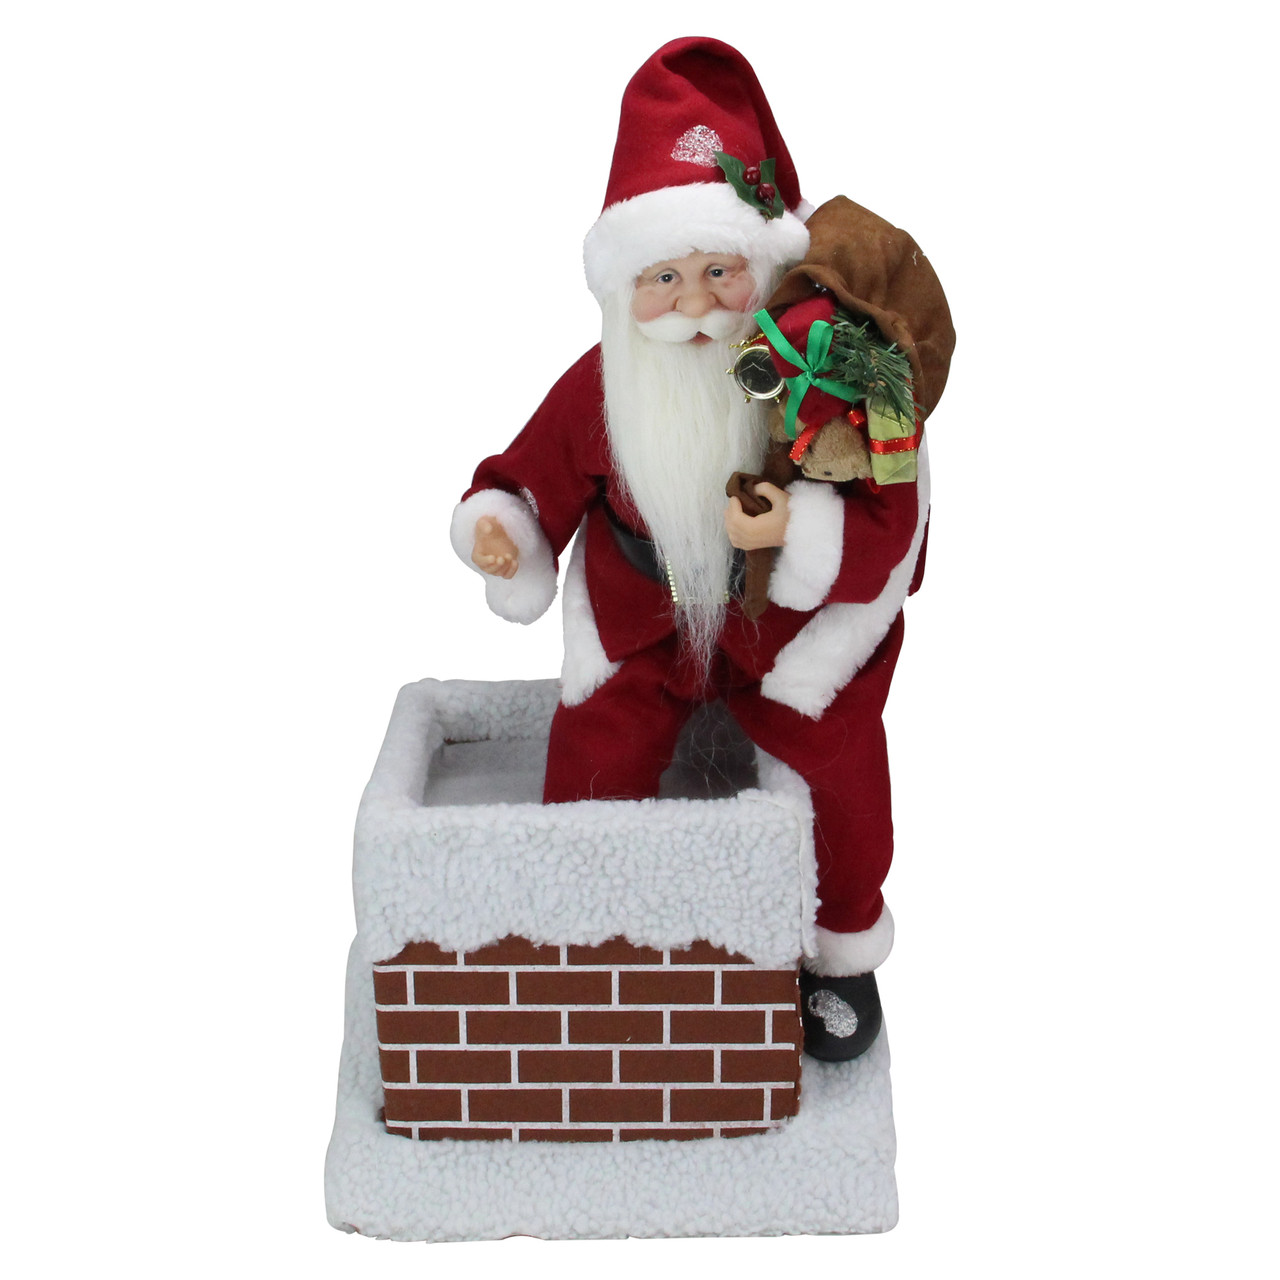 16 5 animated santa claus going down a chimney with gifts christmas